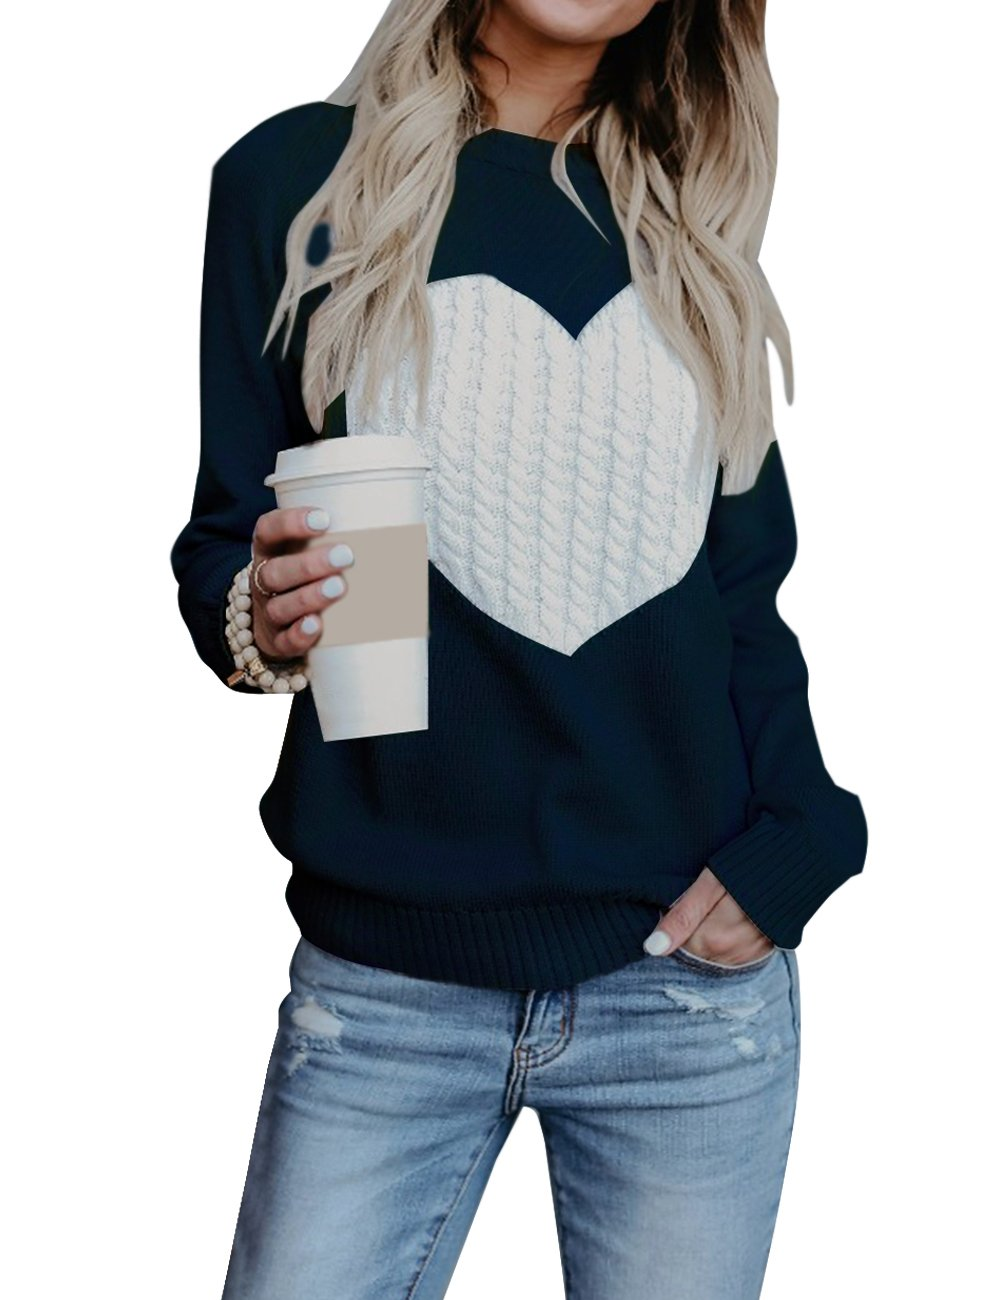 shermie Women's Pullover Sweaters Long Sleeve Crewneck Cute Heart Knitted Black 2XL